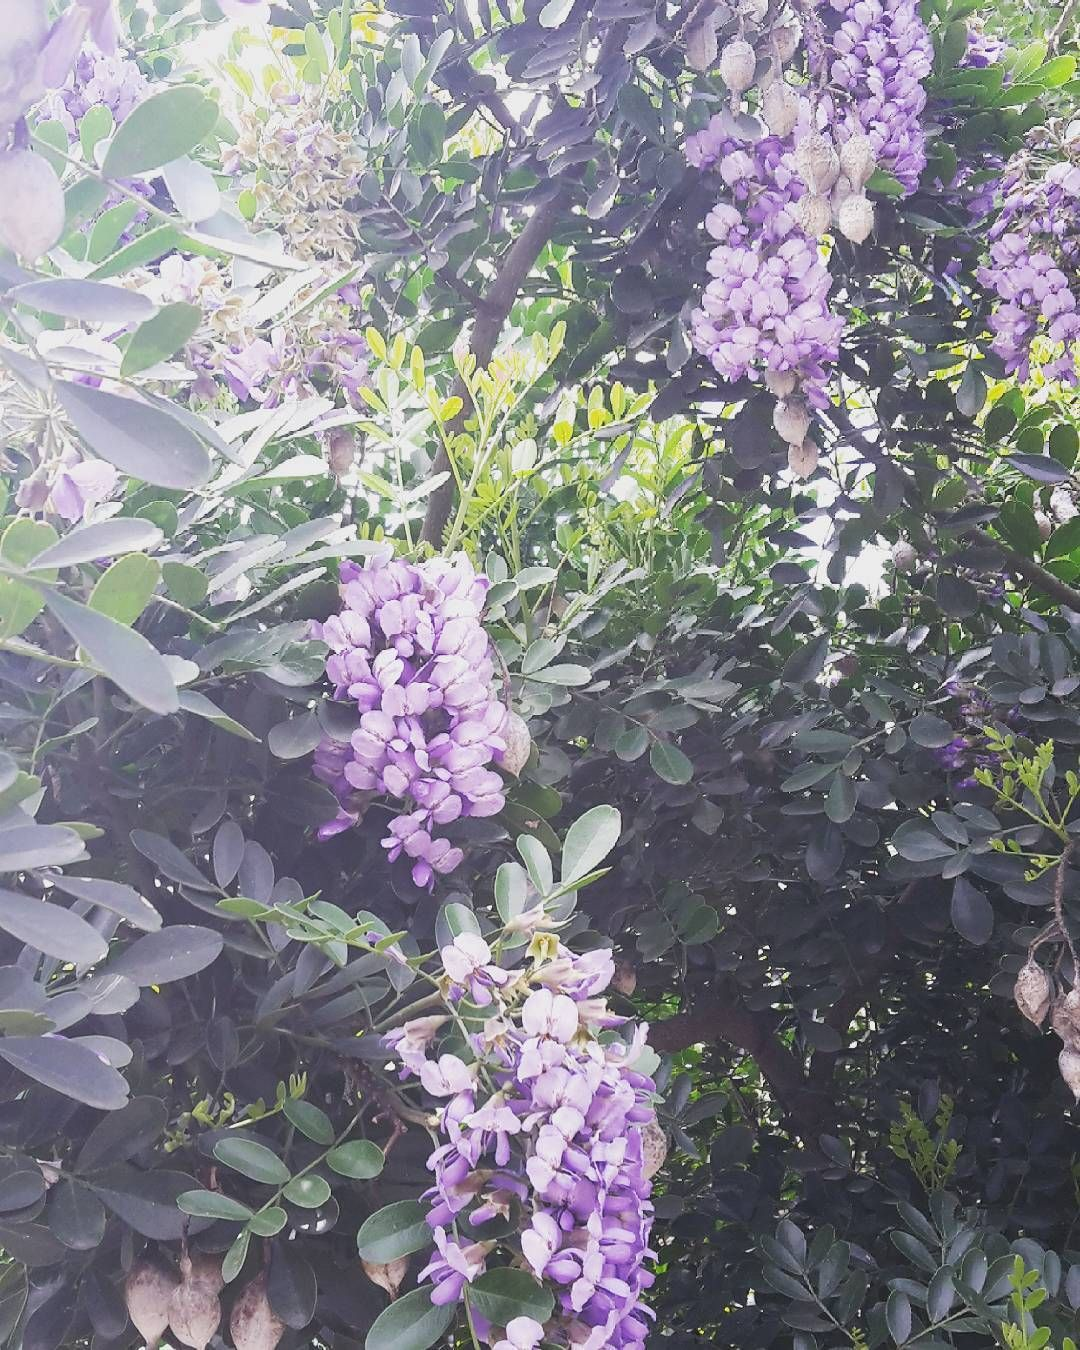 #lilacs by sidways1981